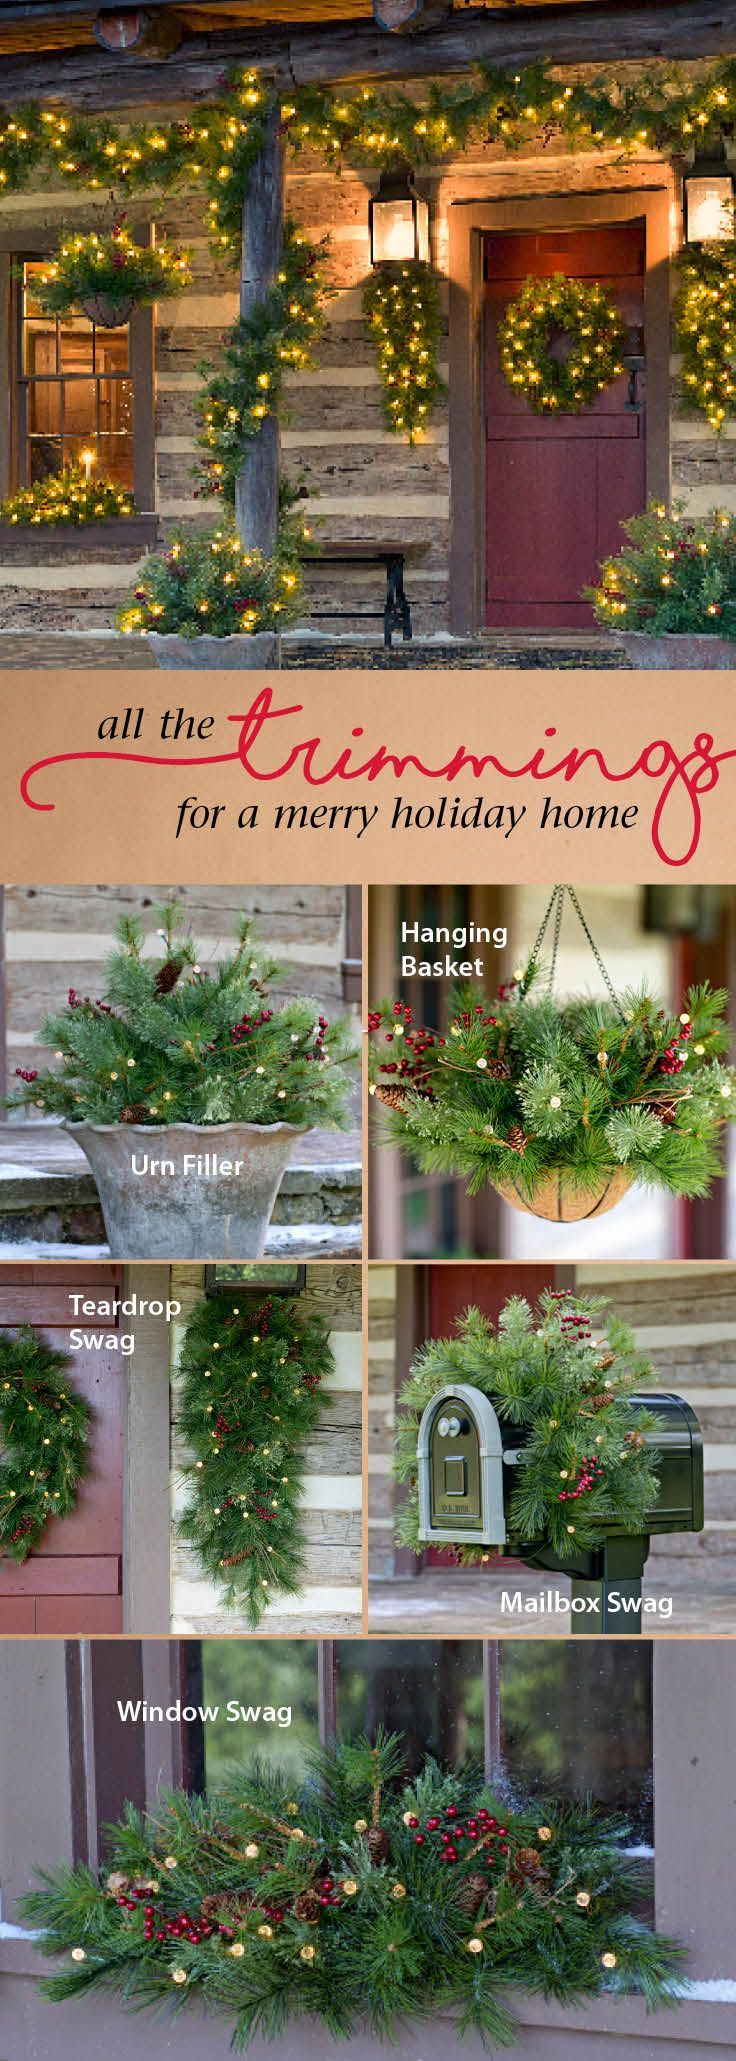 how to make outdoor holiday decorations